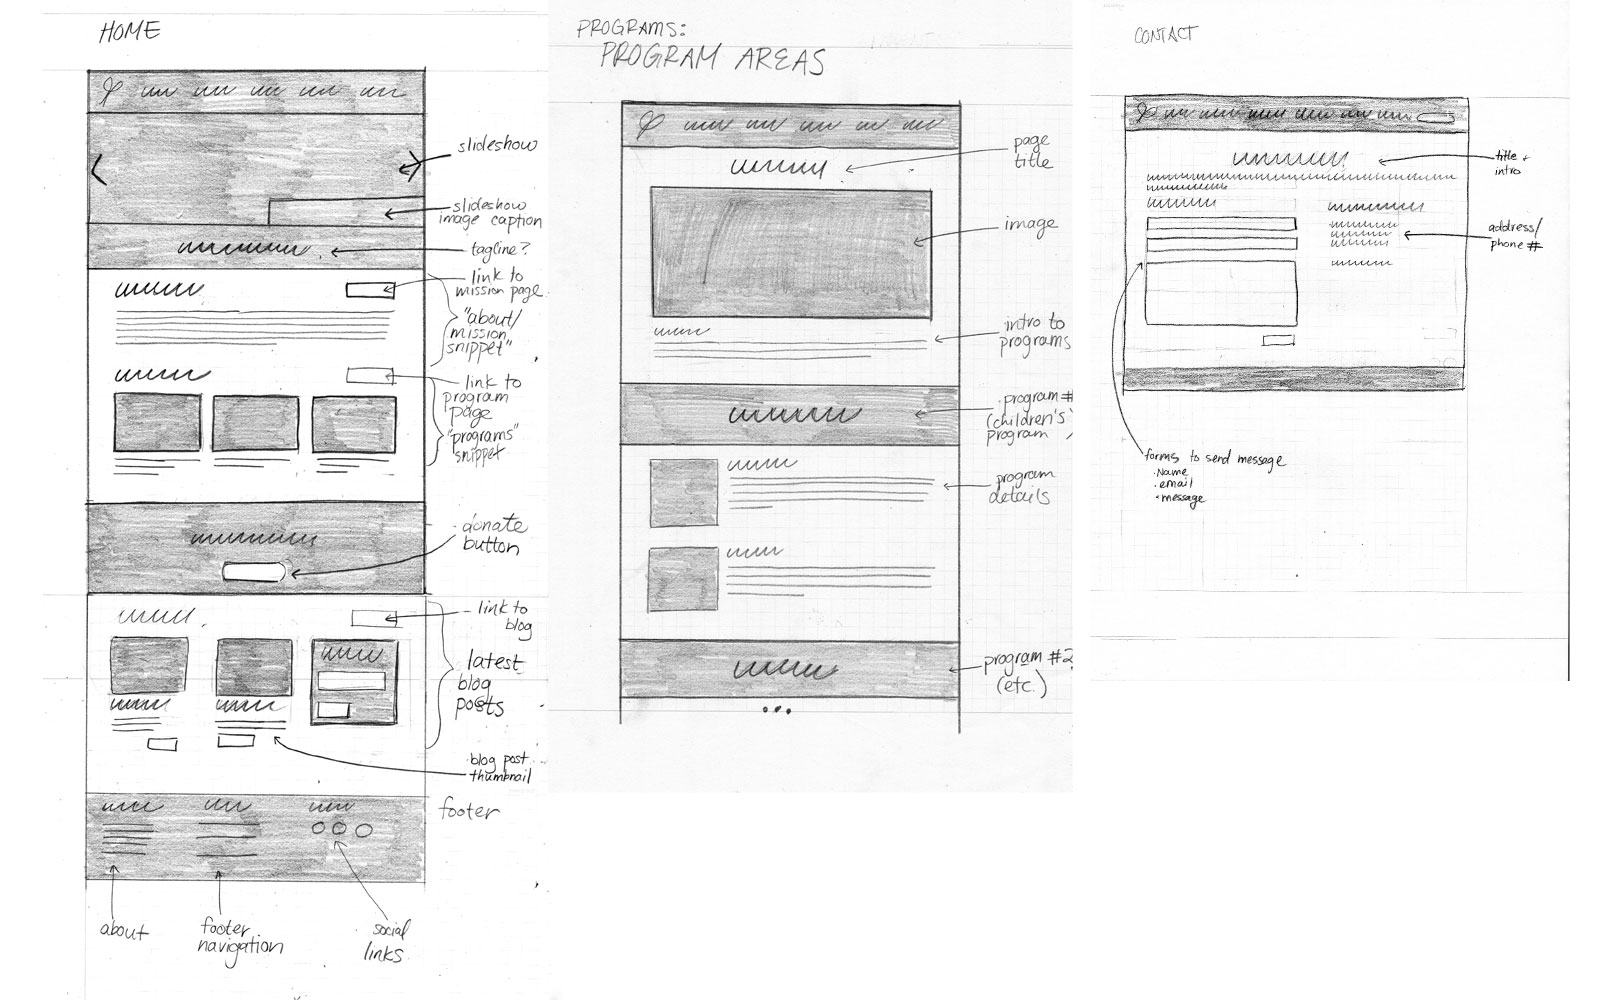 Wireframe sketches for the new Home Page, Programs Page, and Contact Page